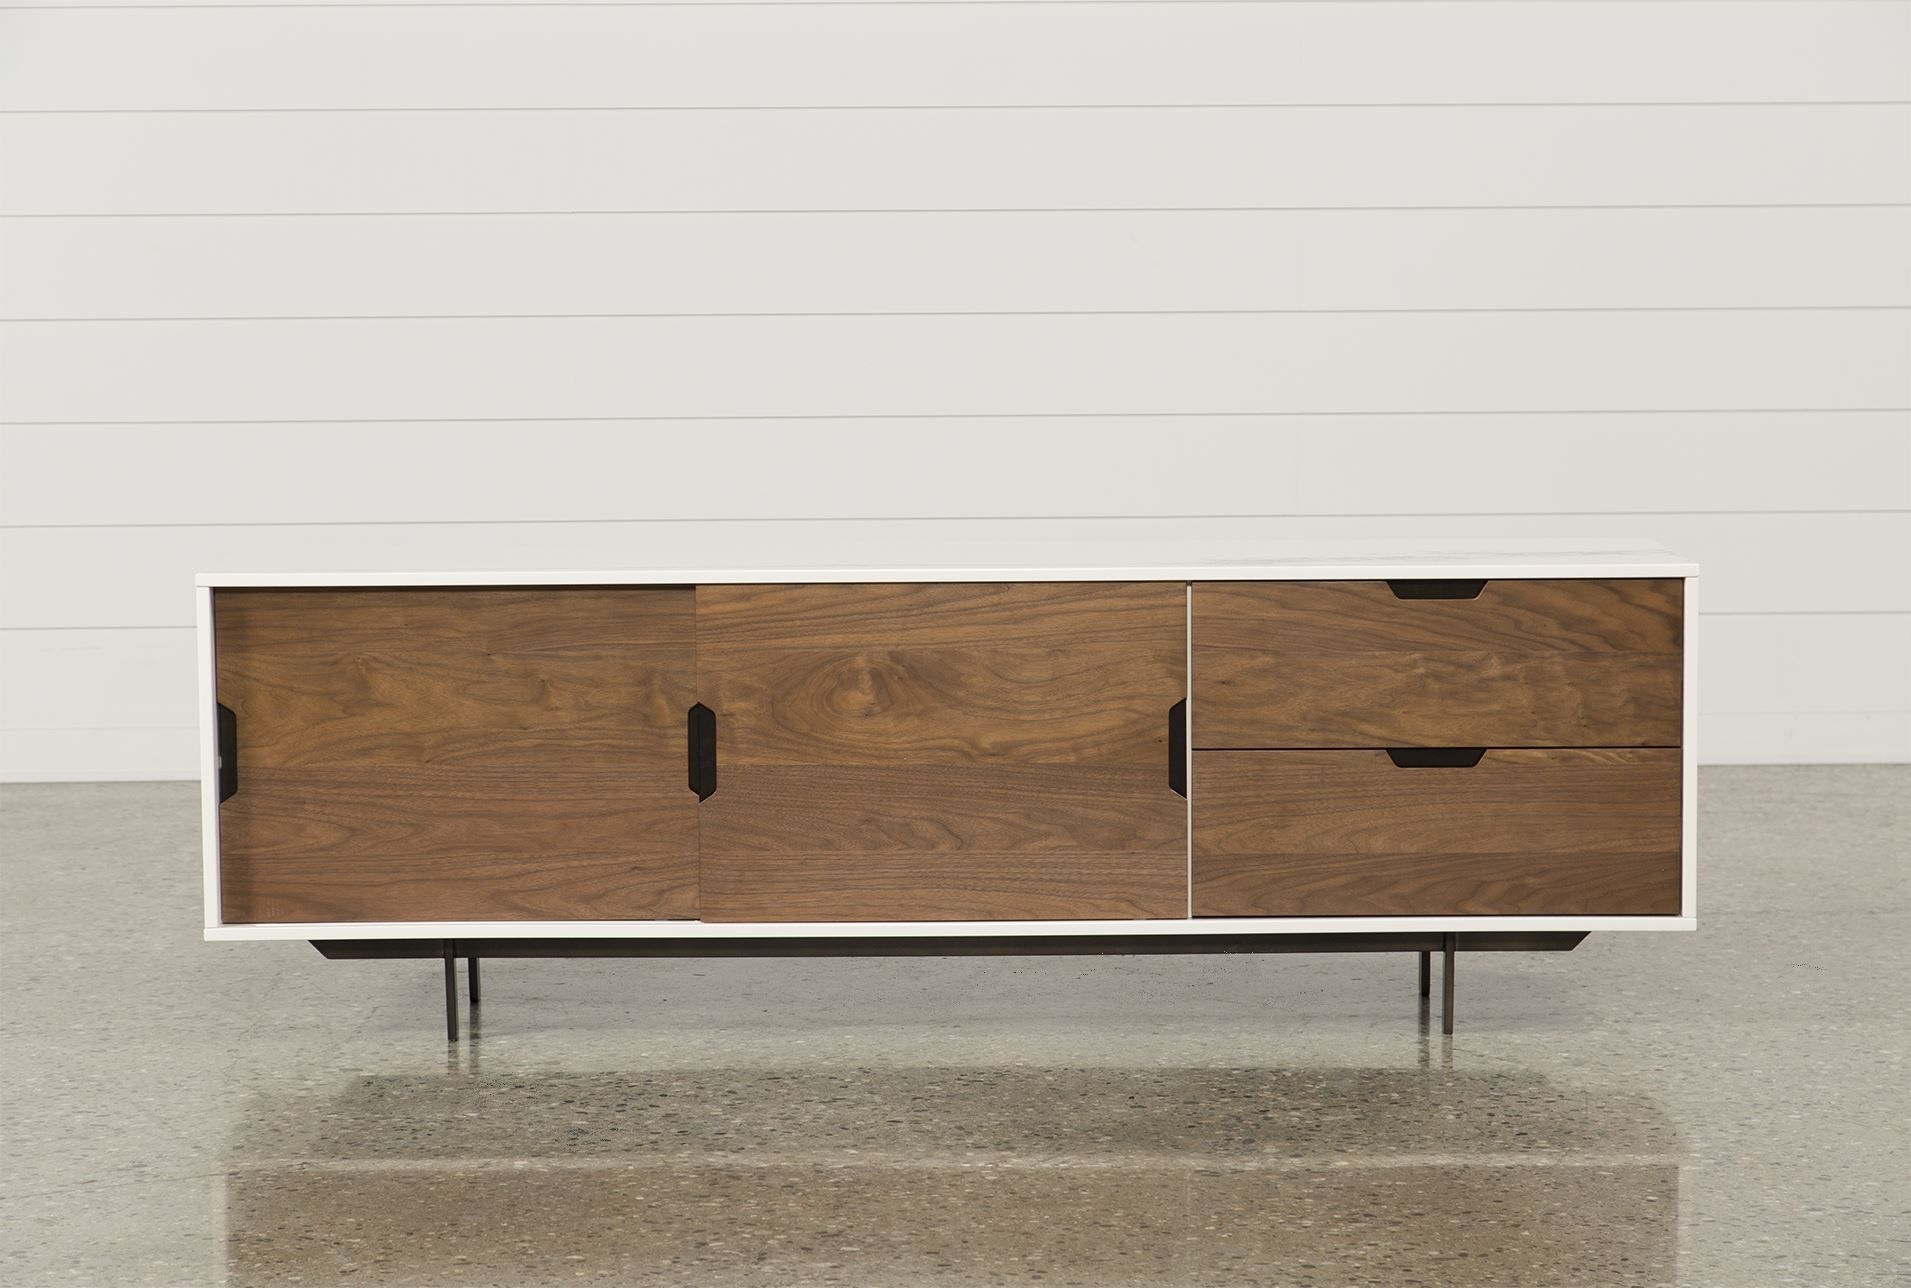 Bale 82 Inch Tv Stand   Fab Furniture   Living Spaces, Furniture, Space Within Bale 82 Inch Tv Stands (View 3 of 30)